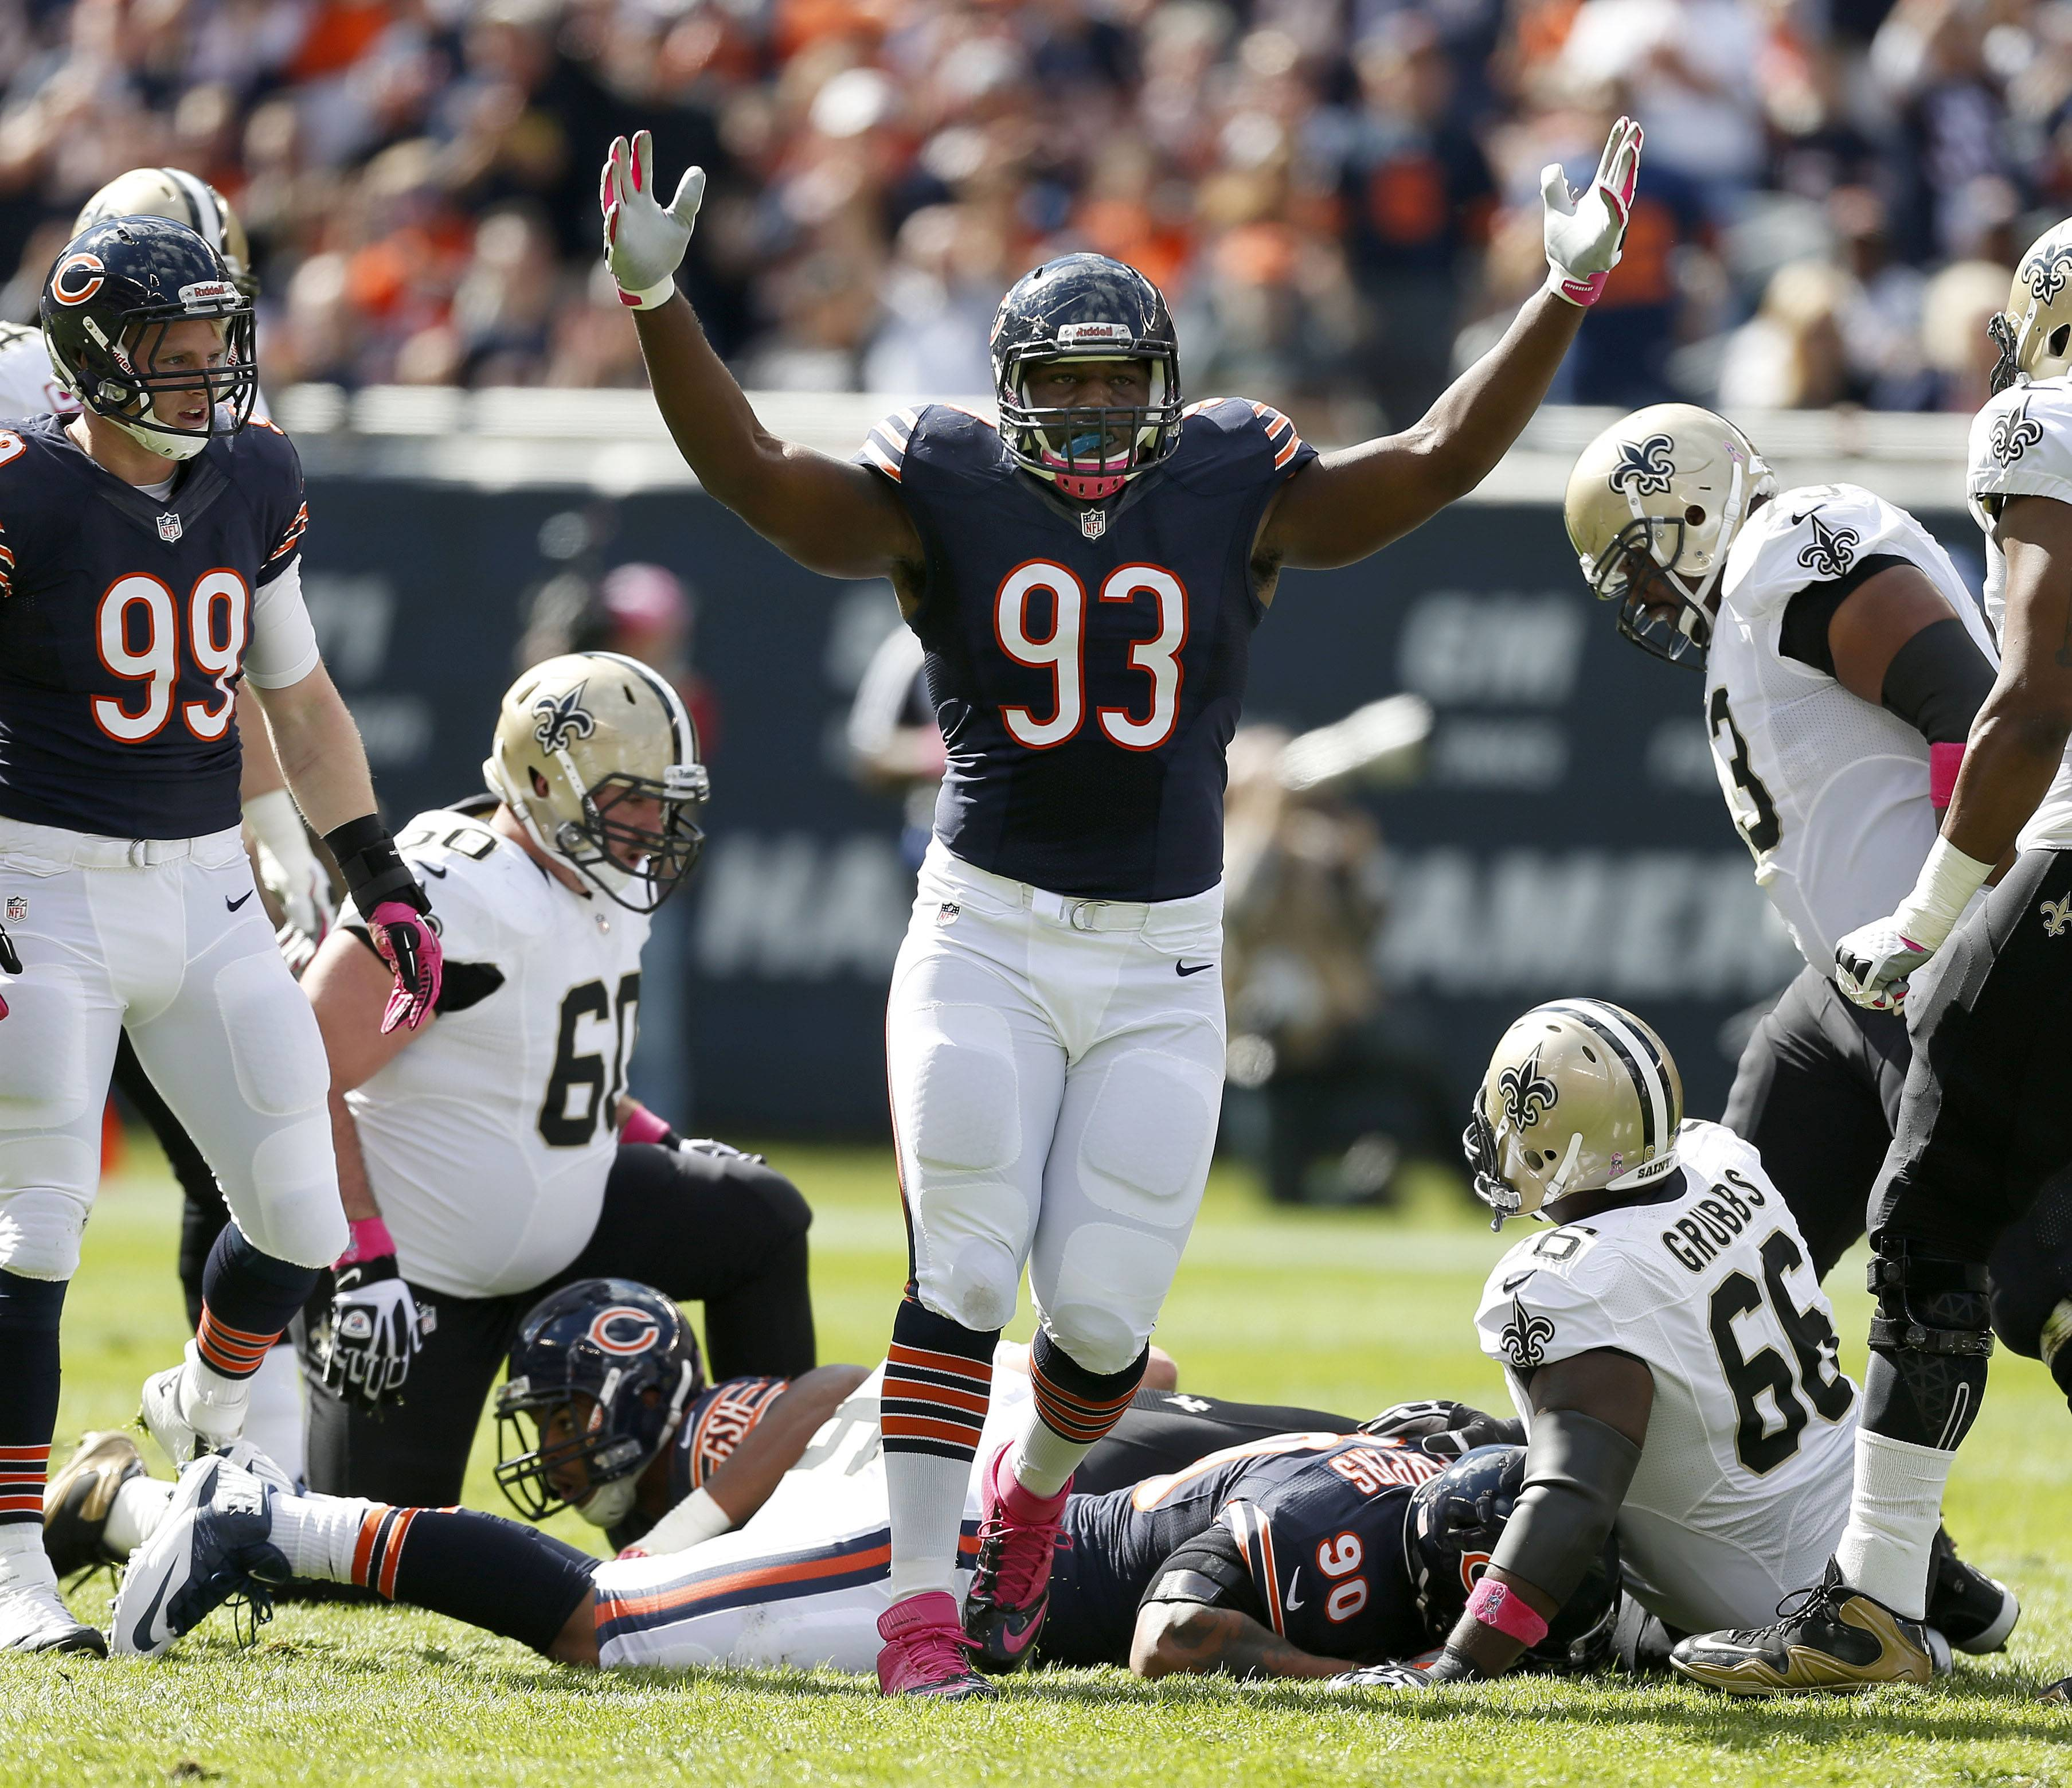 For Bears defensive tackle Nate Collins, here celebrating after a sack last season, his future with the team could hinge on his play in preseason games.